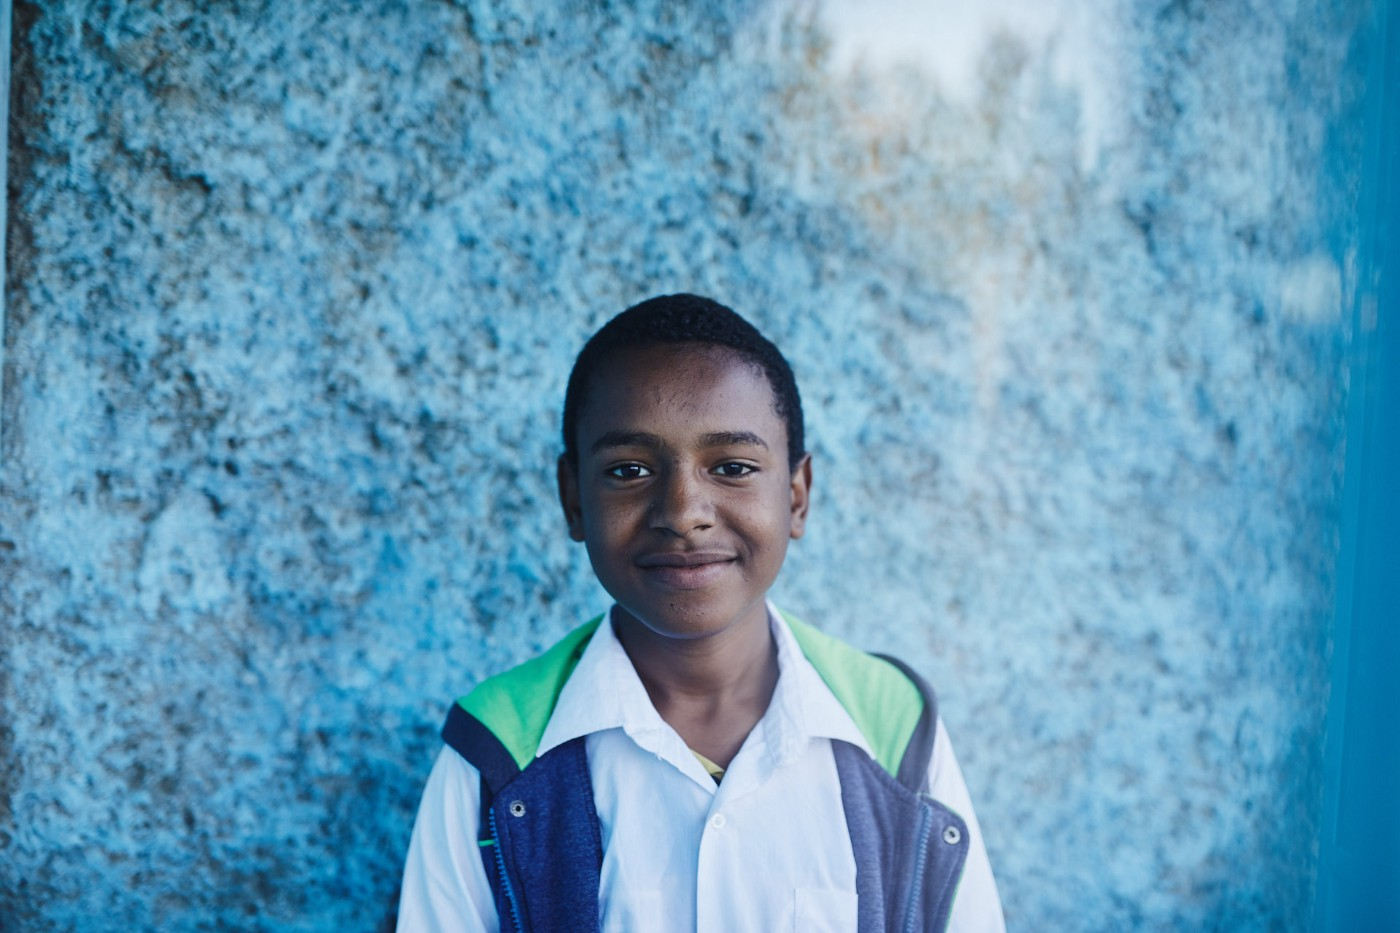 A Ethiopian boy stands in front of a blue wall, in a white button-up shirt and a blue vest.